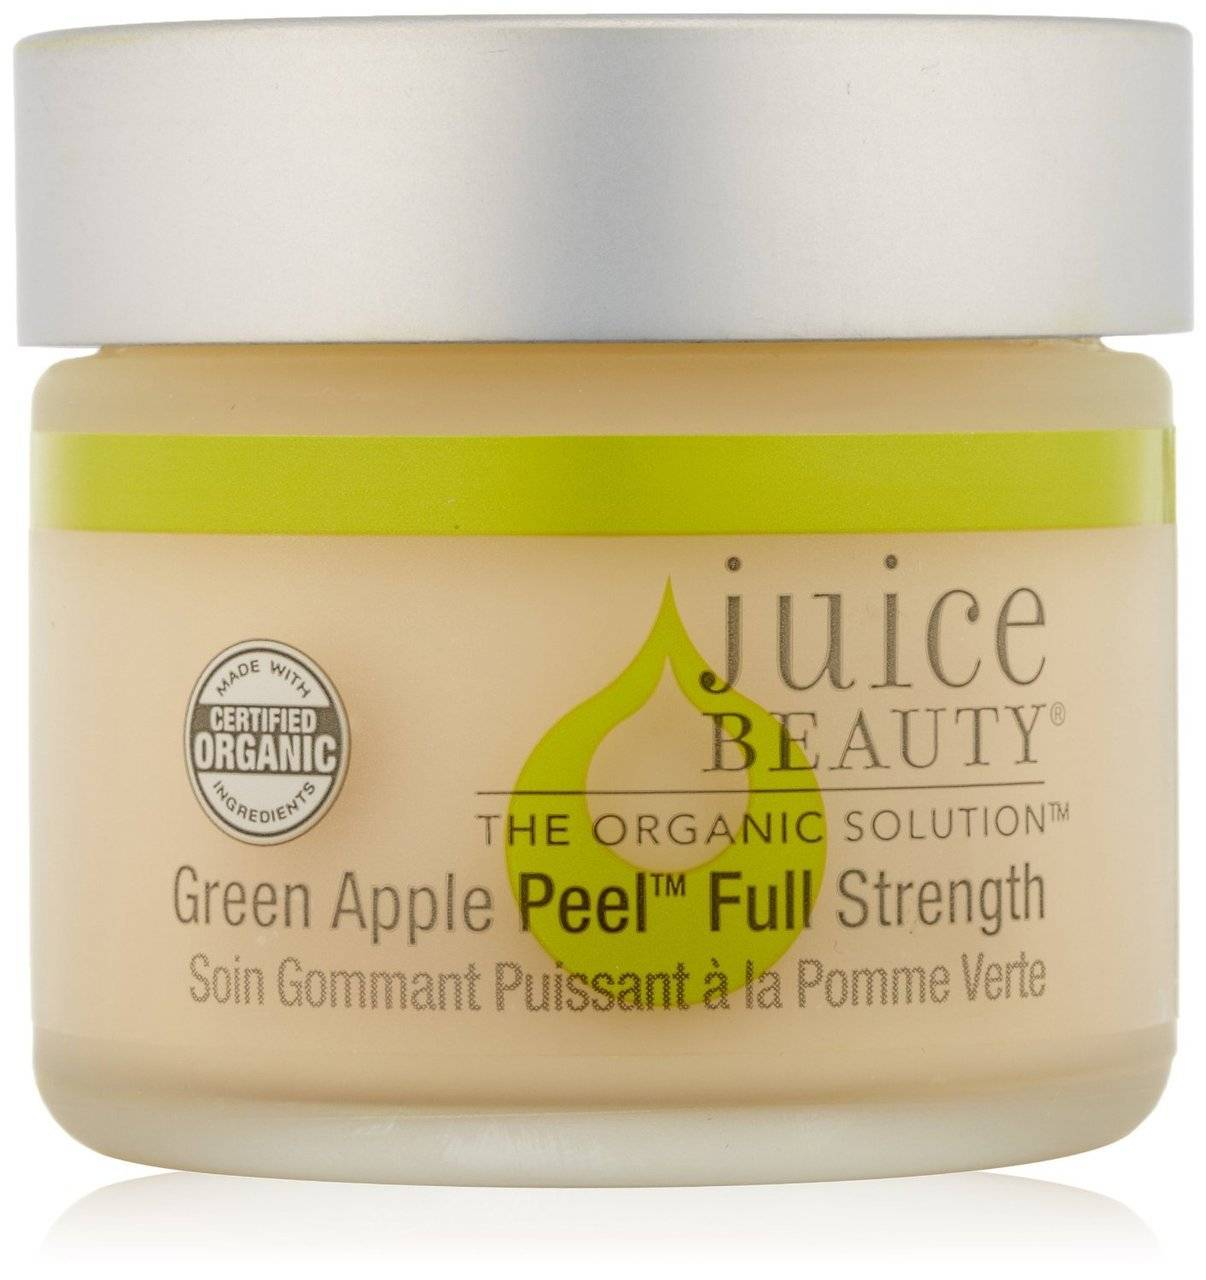 Juice_Beauty_Green_Apple_Peel_Full_Strength_60_ml_unbox0__19870.1405402261.1280.1280